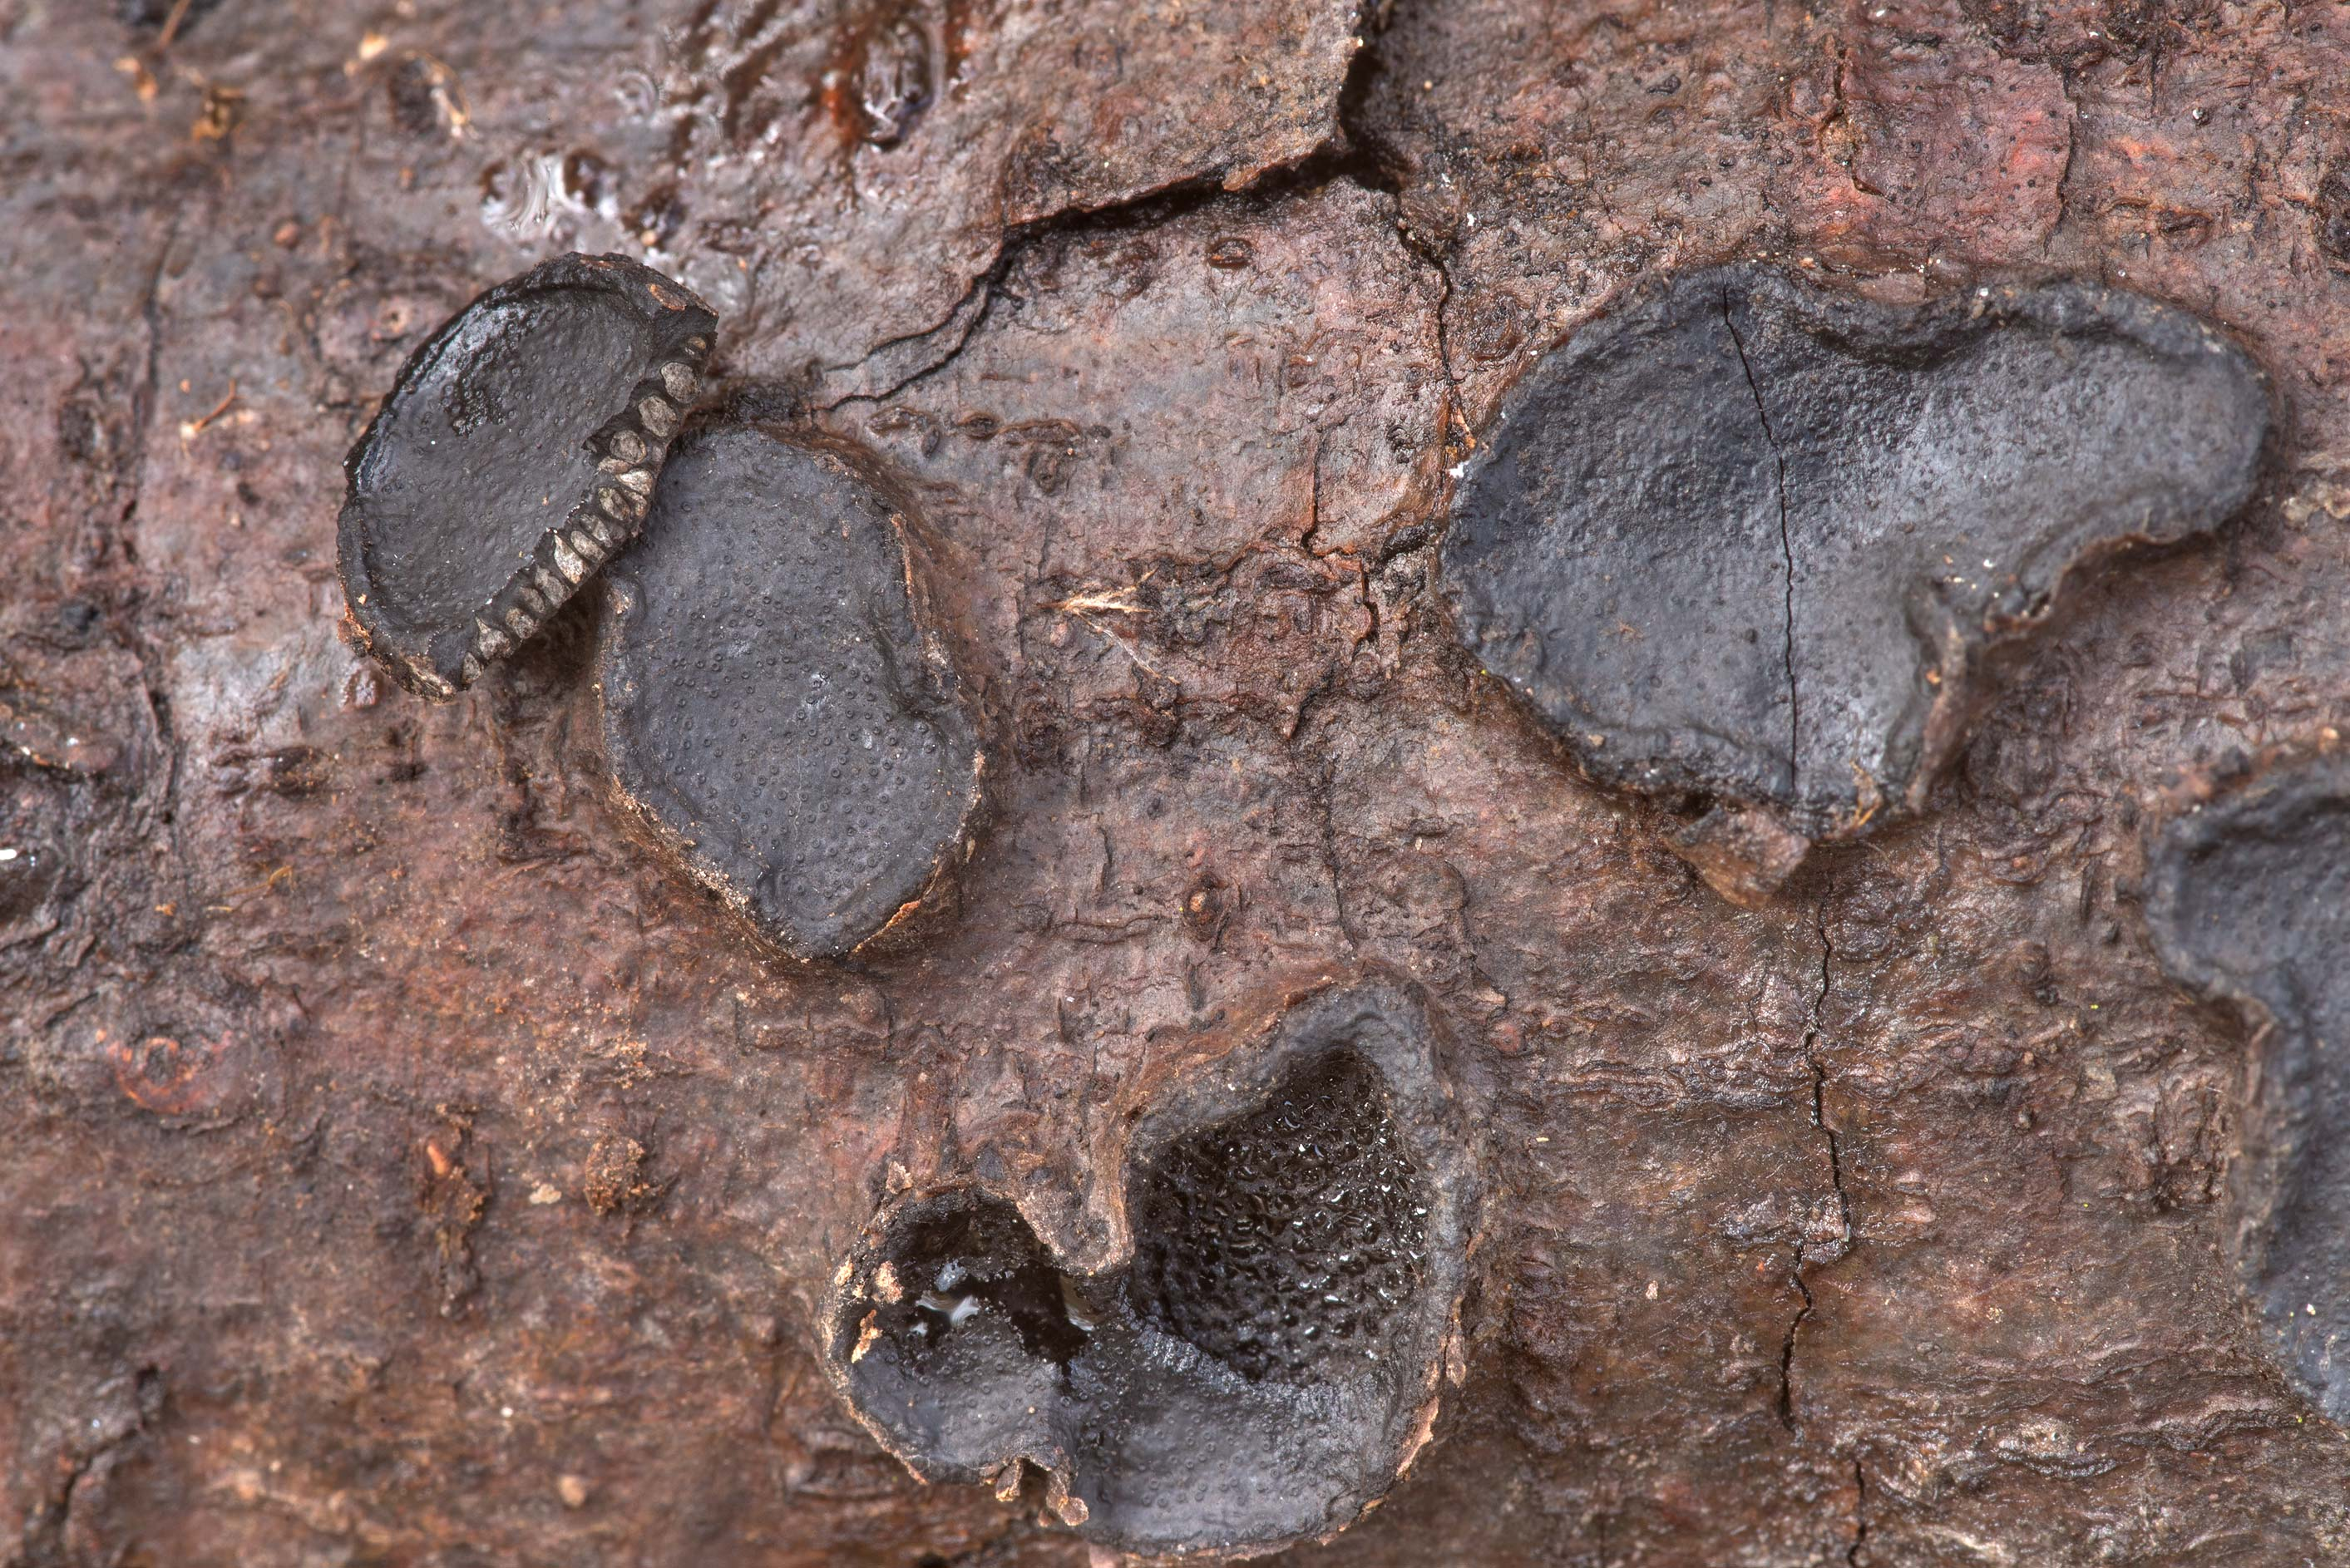 Close-up of black crust fungus Biscogniauxia...Creek Park. College Station, Texas